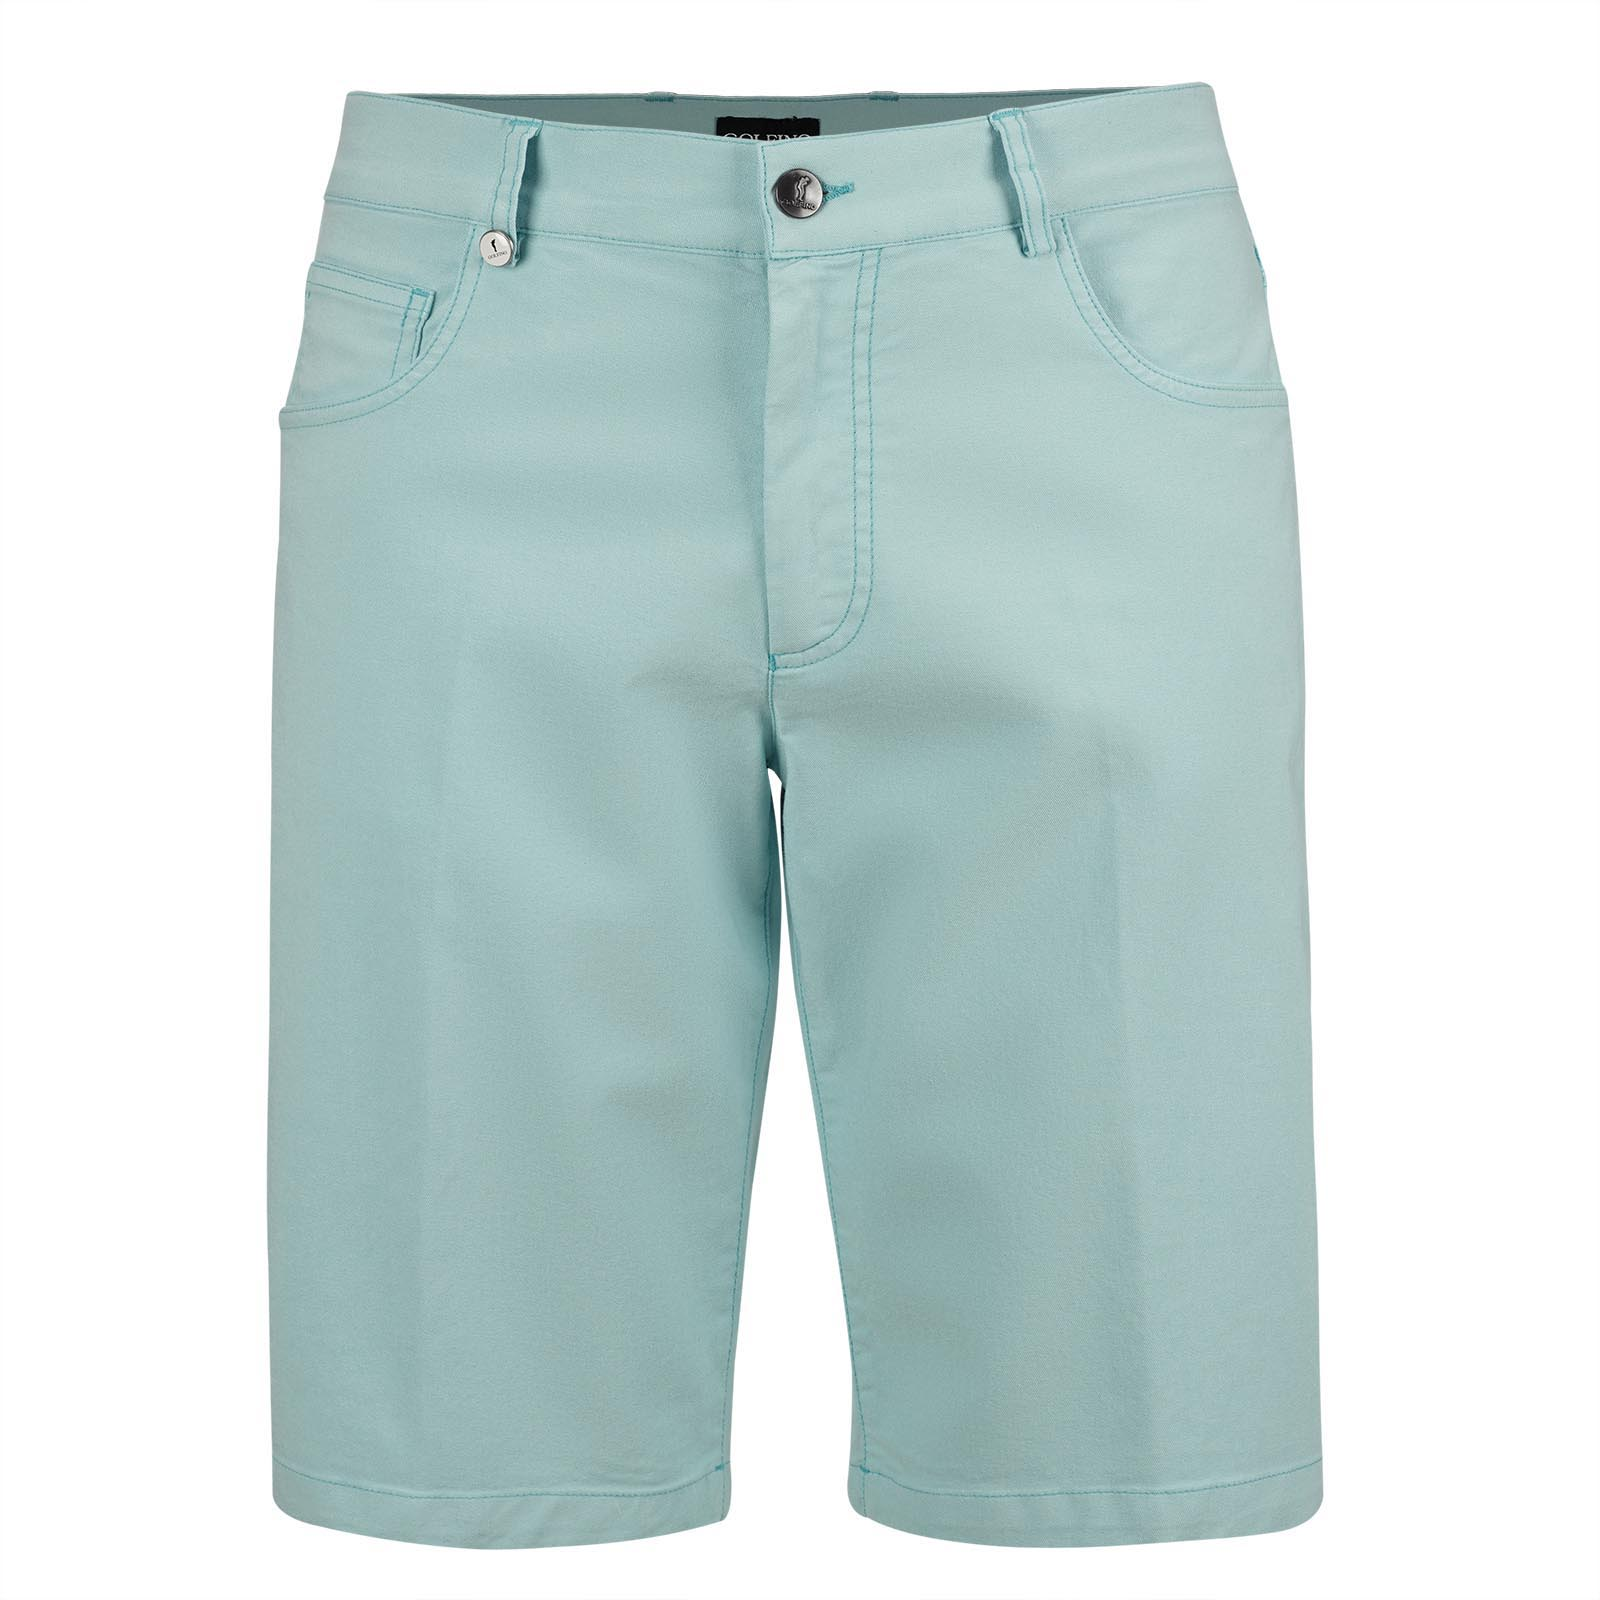 Herren Bermudas im Five-Pocket-Style